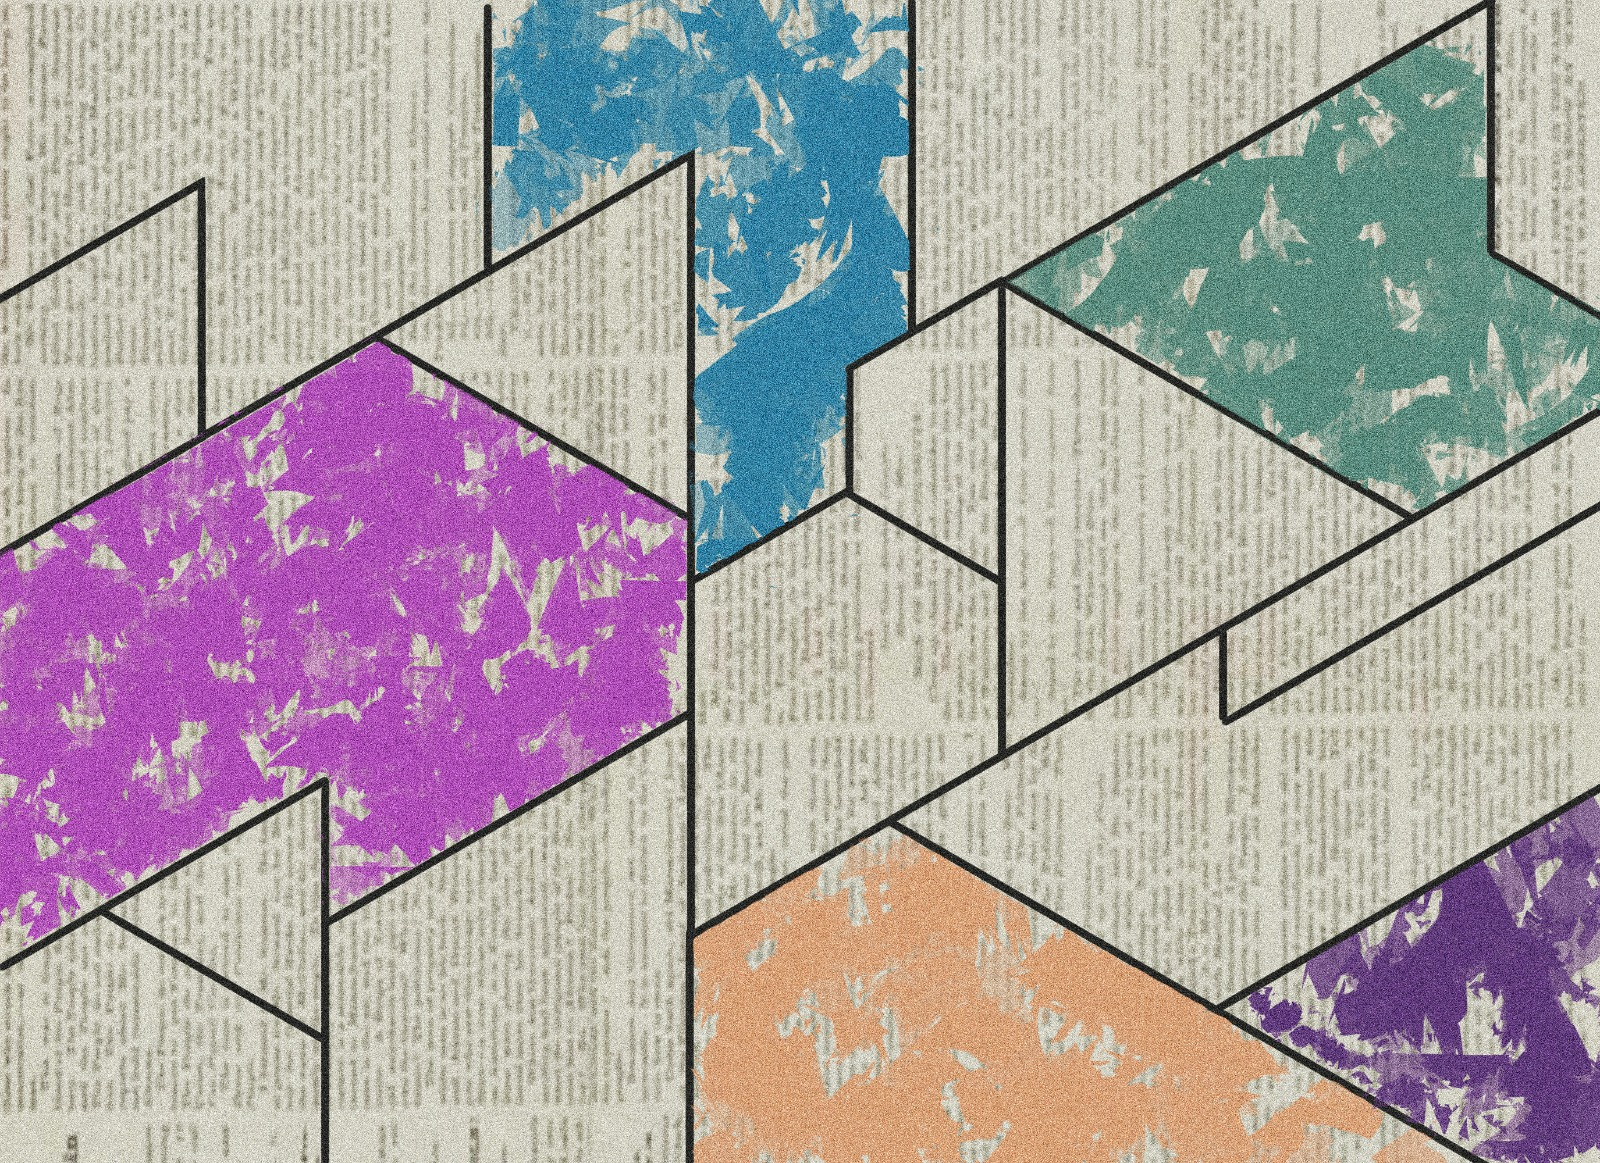 abstract color block design over newsprint